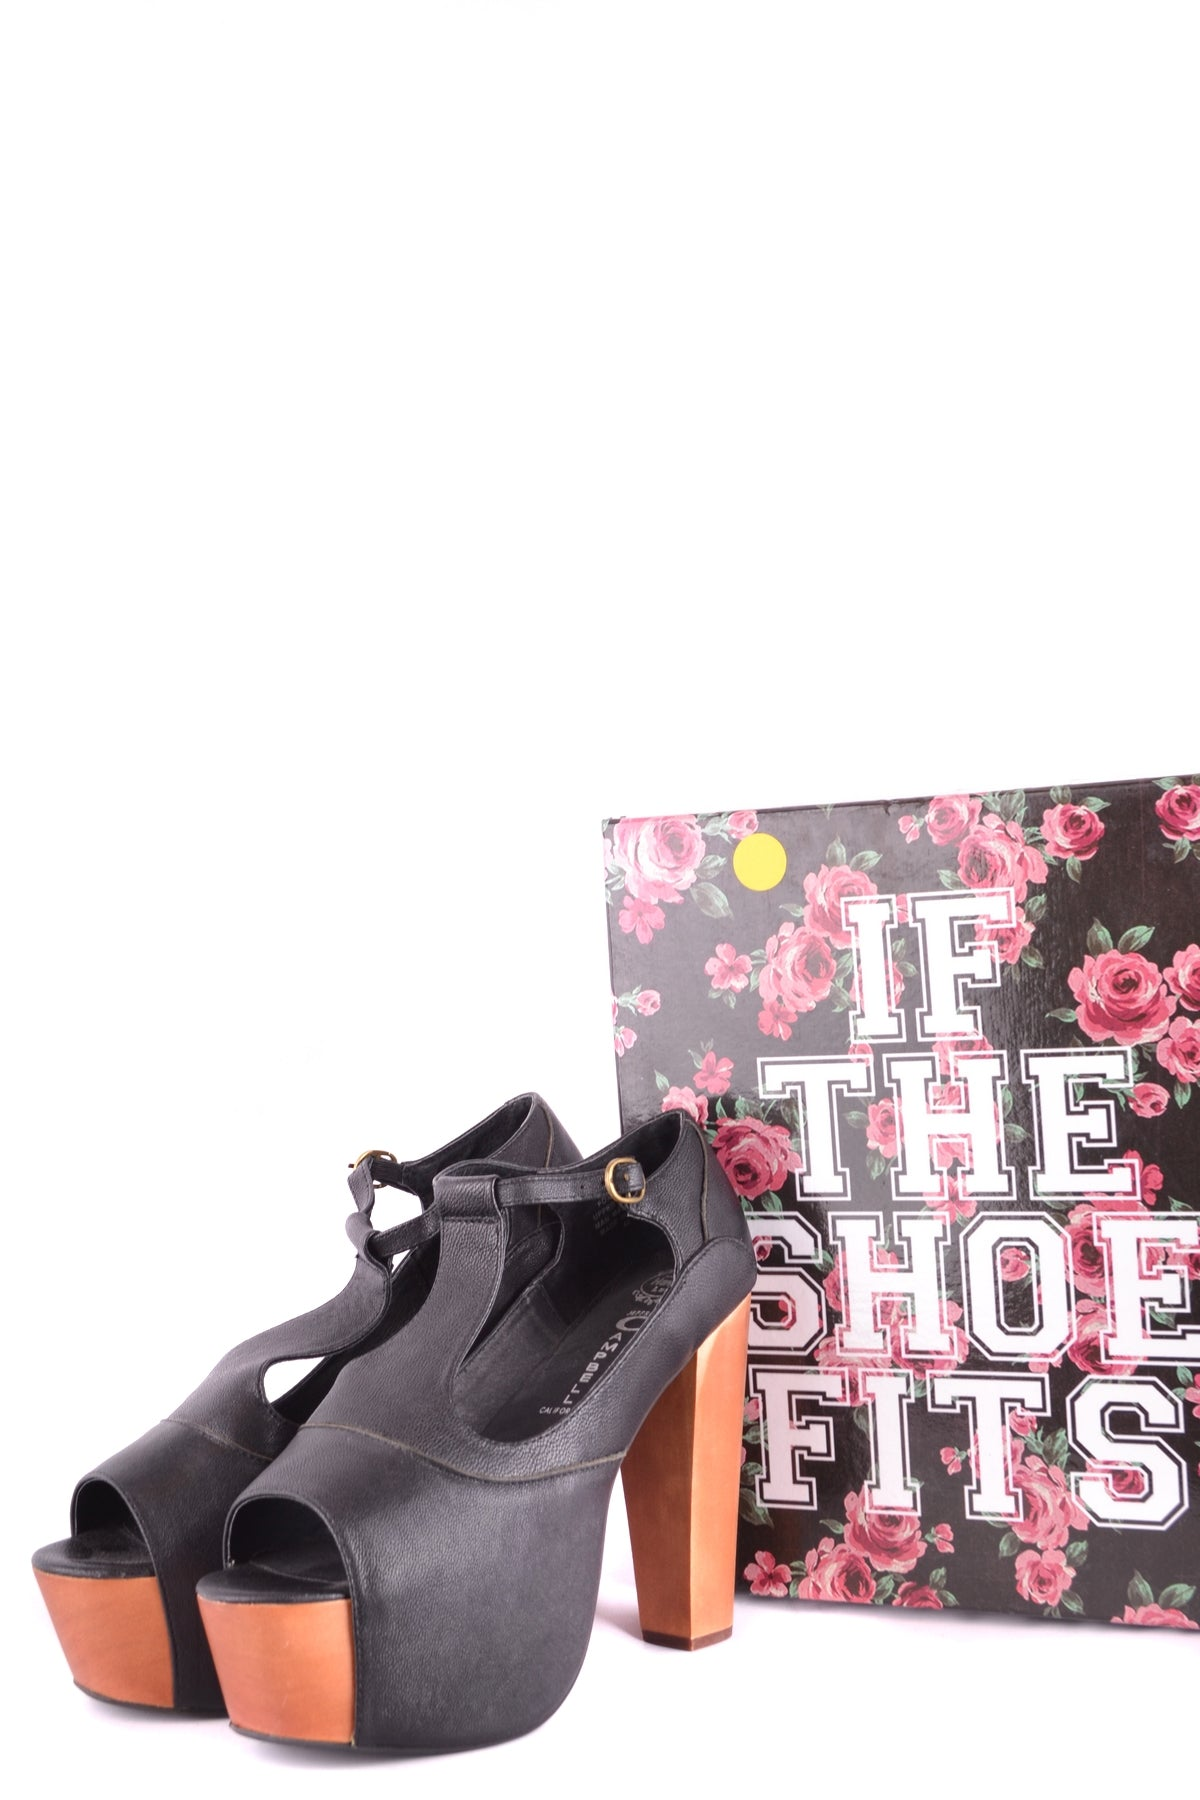 Shoes Jc Play By Jeffrey Campbell-Sandals - WOMAN-Product Details Type Of Accessory: ShoesTerms: New With LabelHeel'S Height: 13Main Color: BlackGender: WomanMade In: ItalyYear: 2017Season: Spring / SummerComposition: Leather 100%-Keyomi-Sook